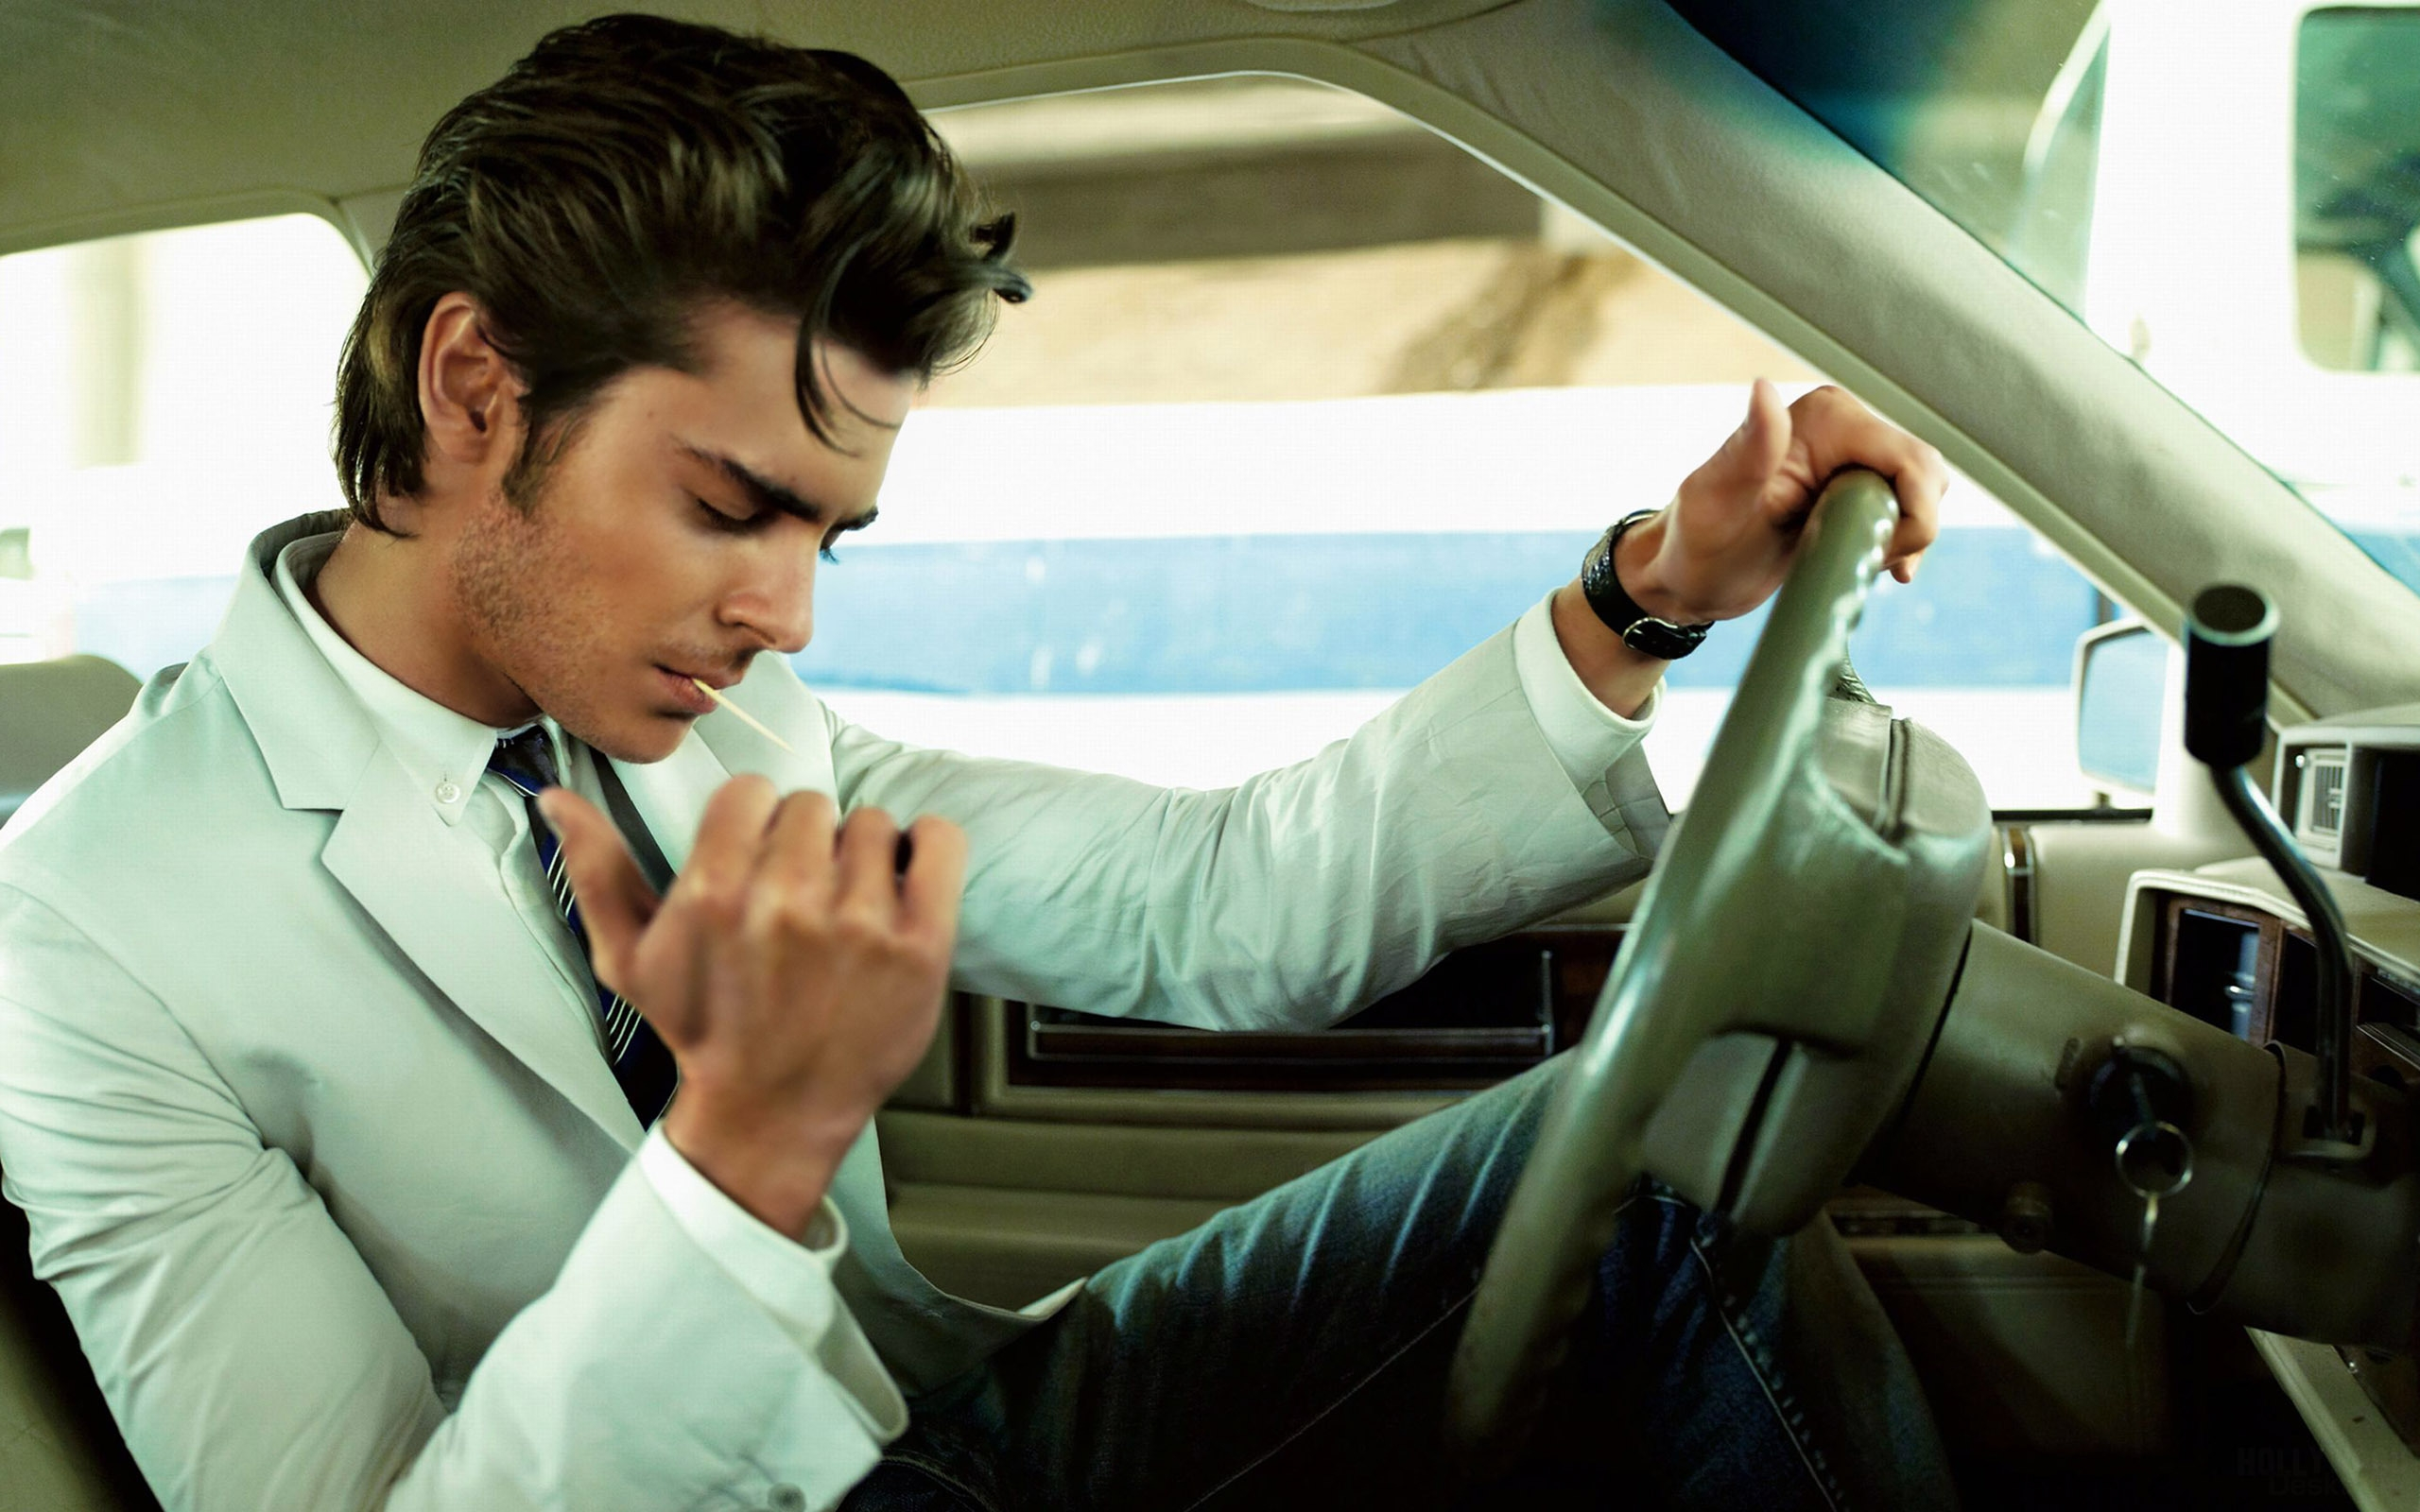 Zac Efron Rock and Roll Style for 2560 x 1600 widescreen resolution